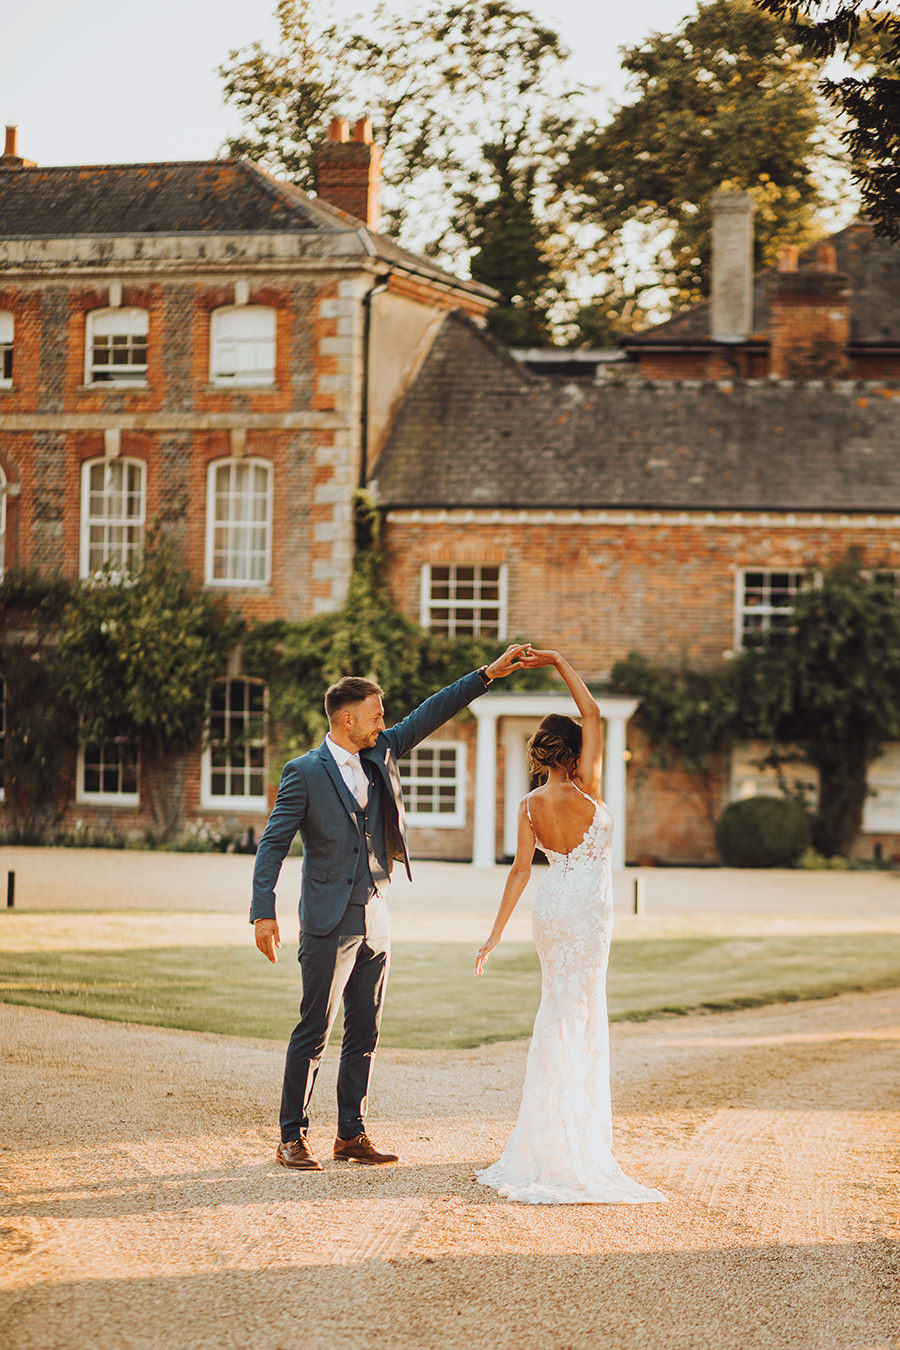 Yasmin & Mark's chic modern Kent wedding with Honeydew Moments (42)